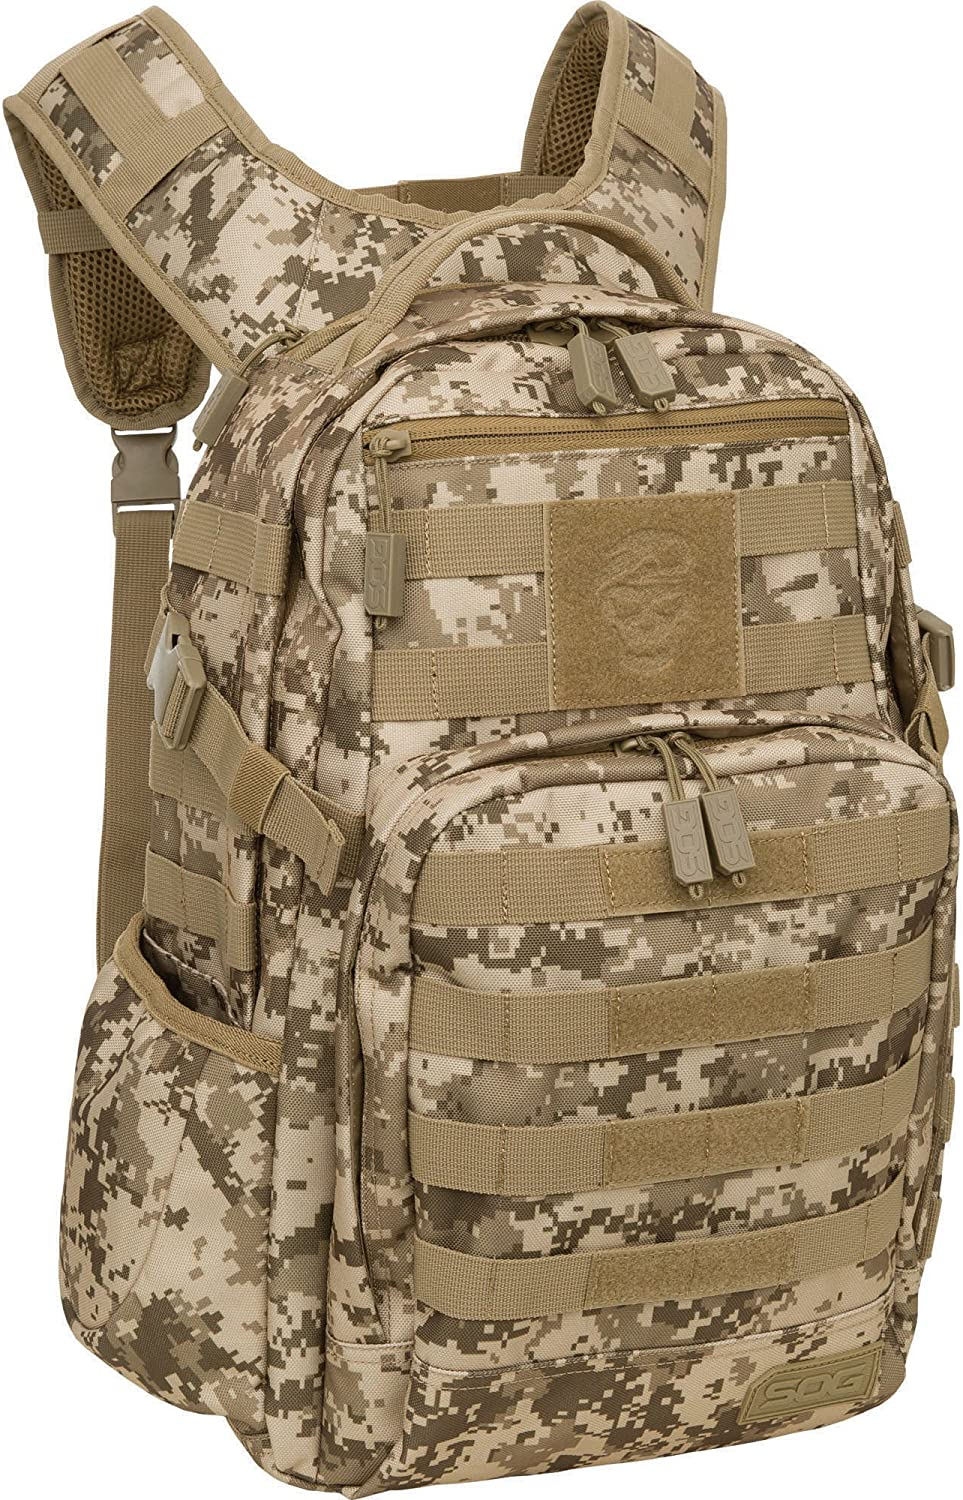 SOG Ninja Tactical Day Pack, 24.2-Liter, Camo : Sports & Outdoors